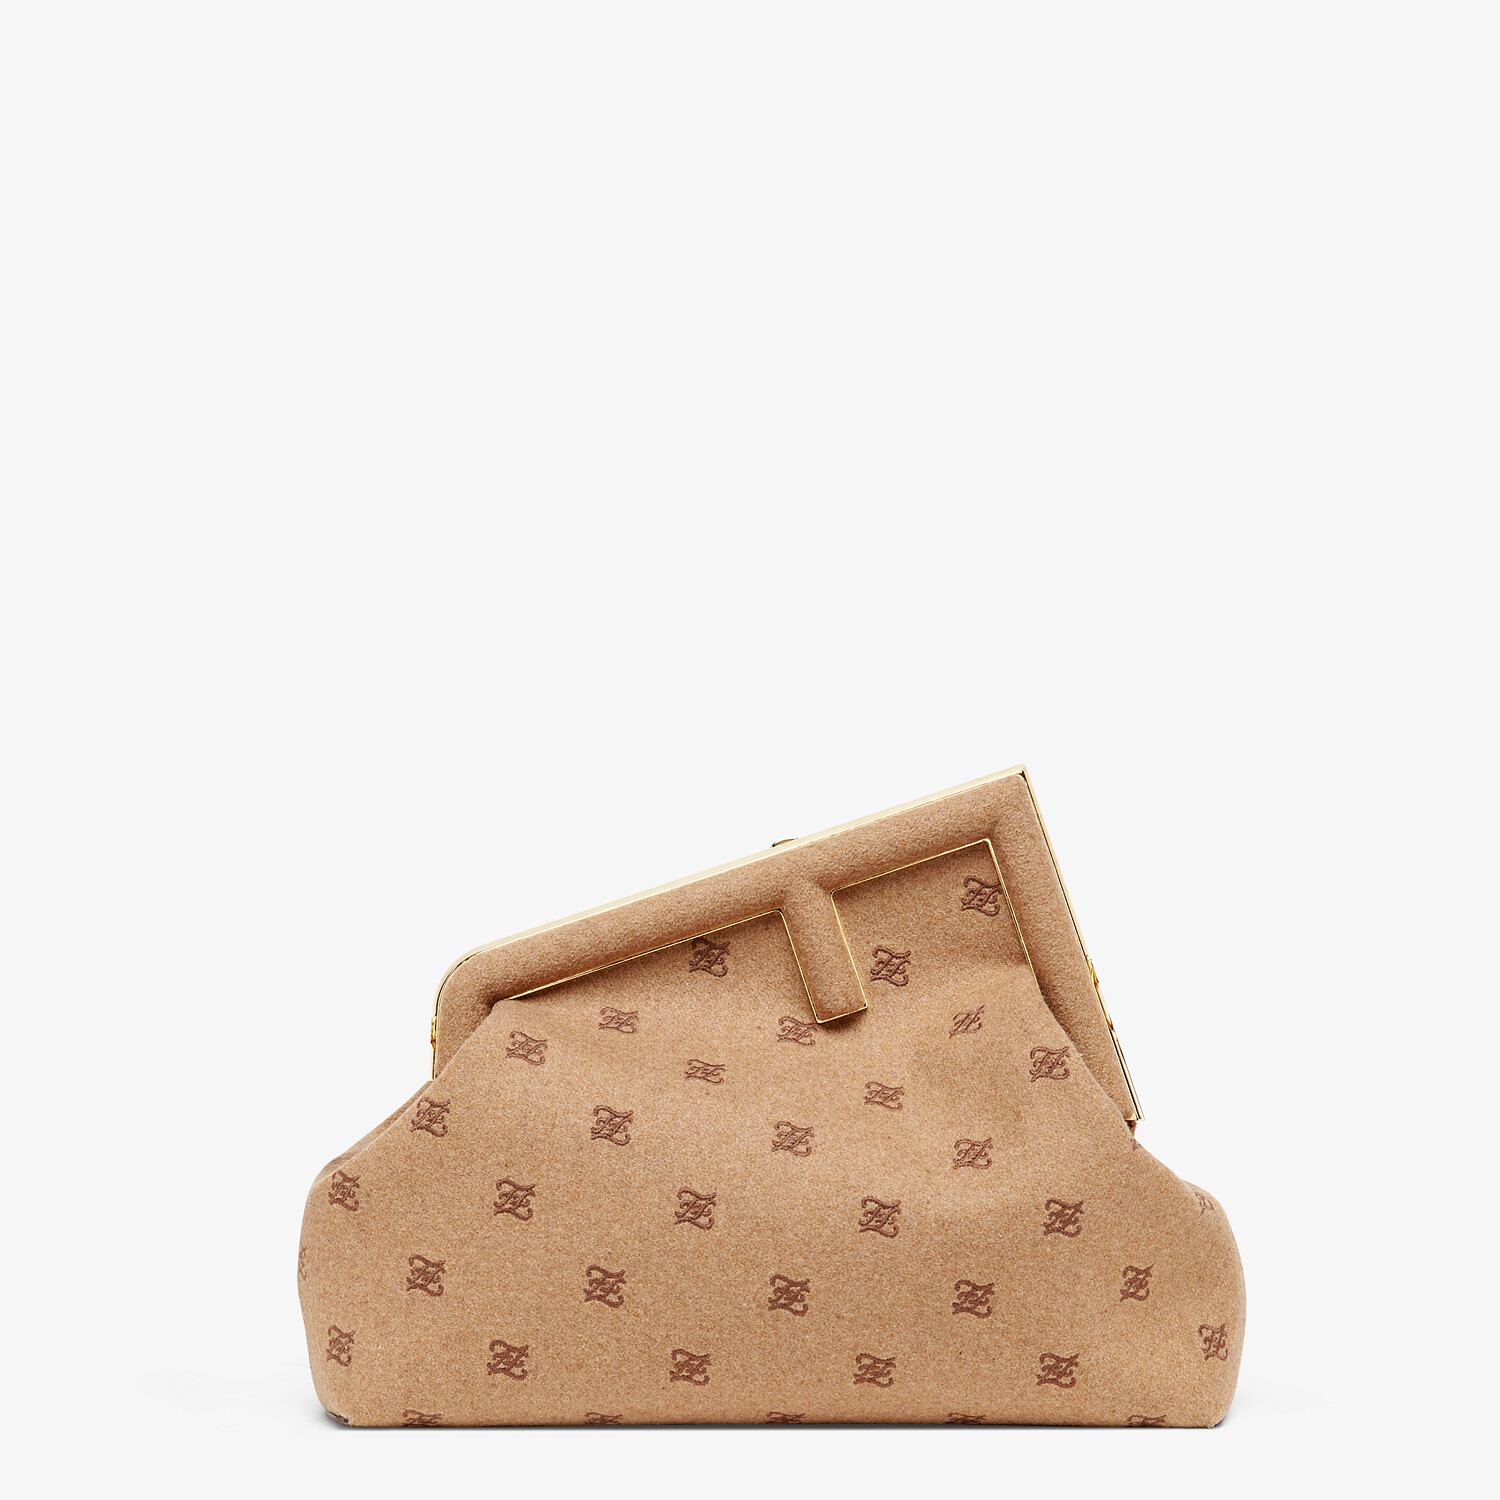 FENDI FENDI FIRST MEDIUM - Beige flannel bag with embroidery - view 1 detail